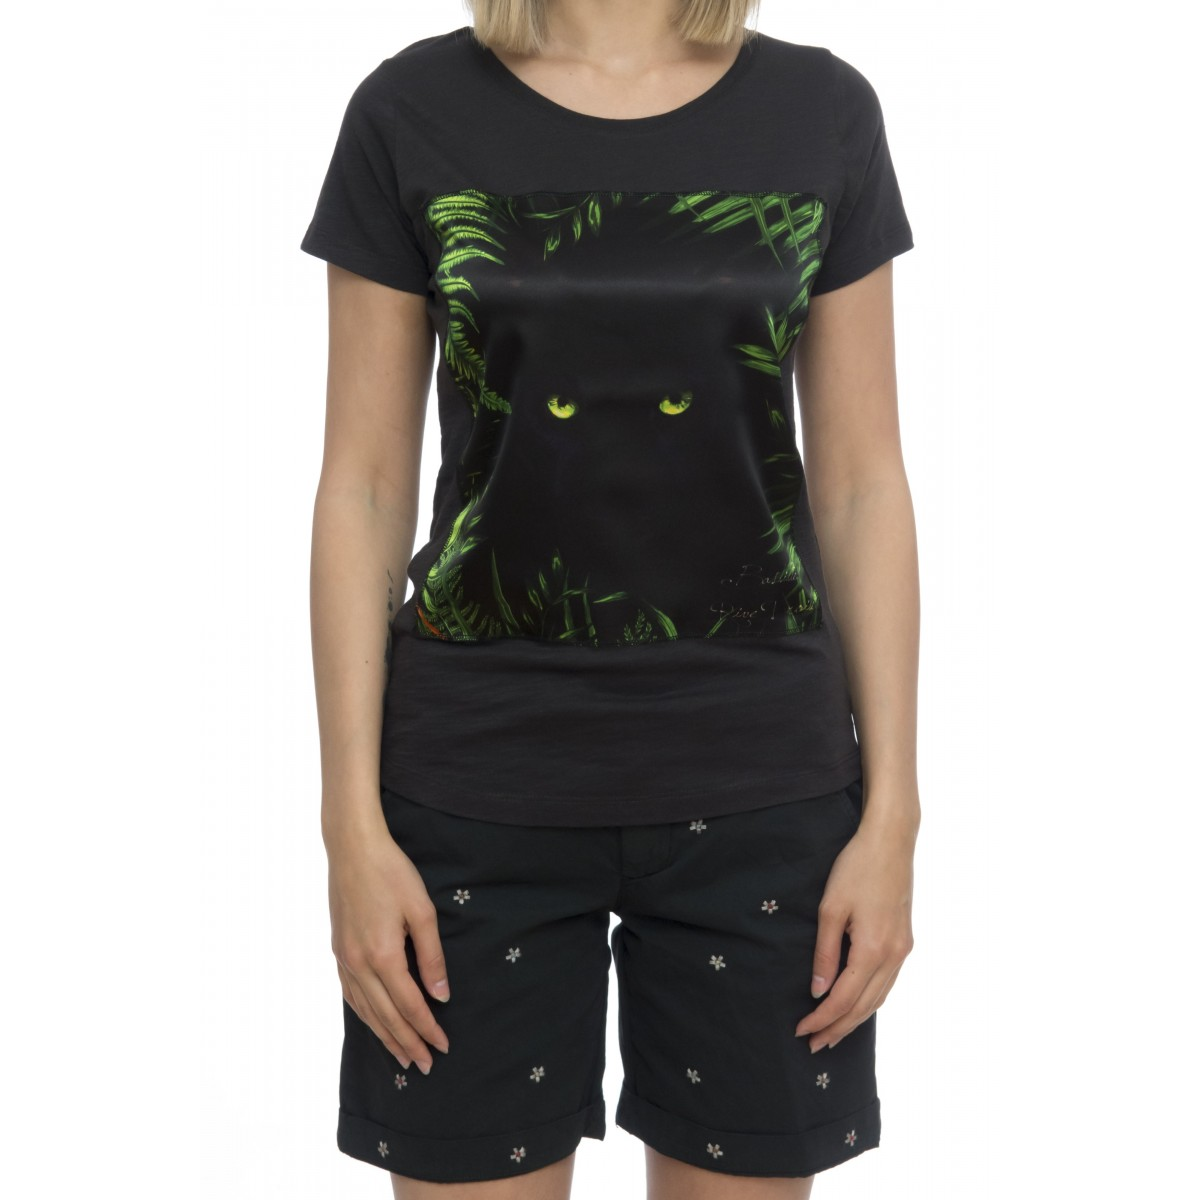 T-shirt donna - Savage seta black